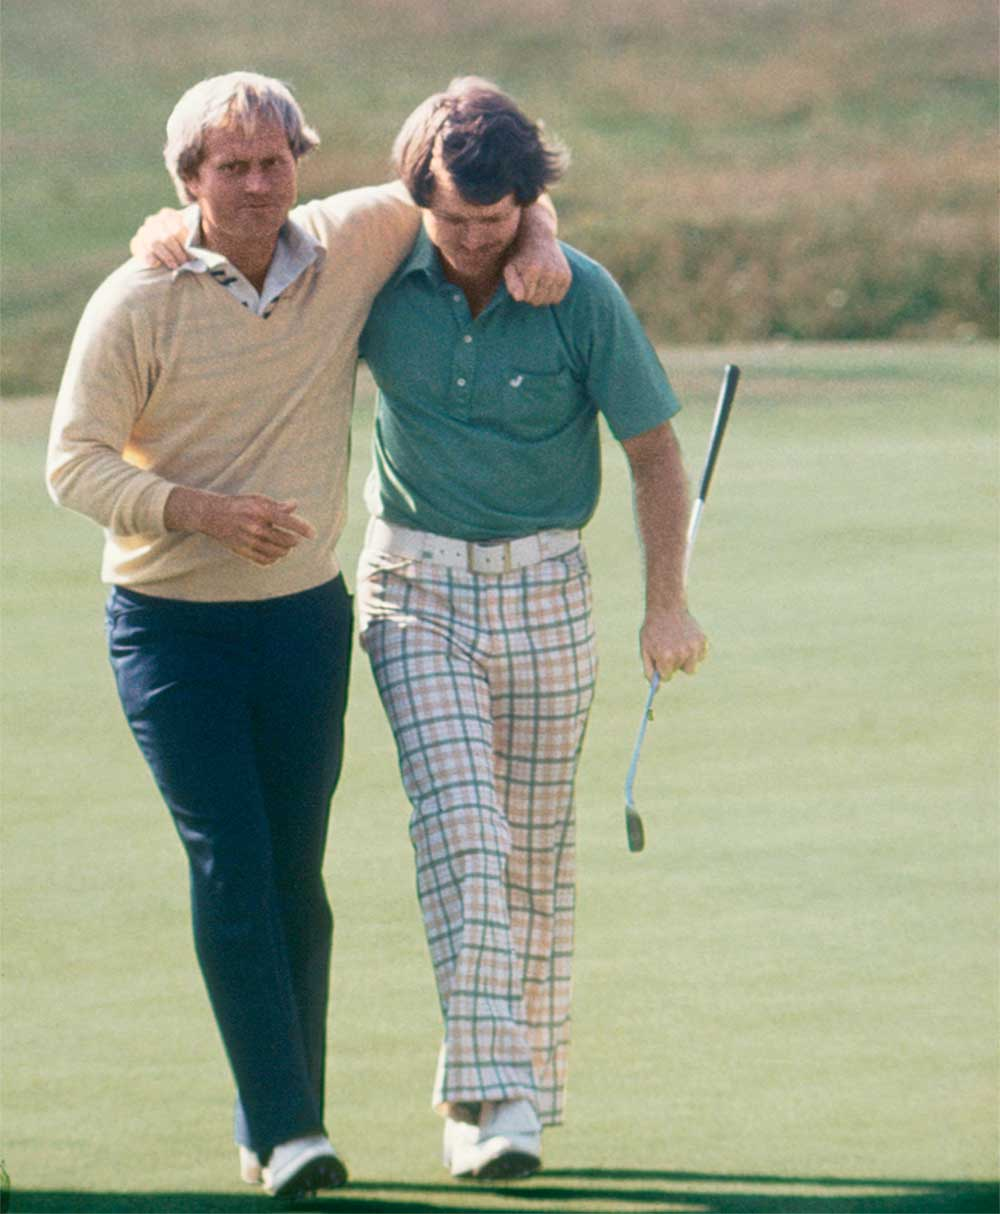 Jack Nicklaus and Tom Watson's epic 1977 Open Championship battle will forever be known as the Duel in the Sun.